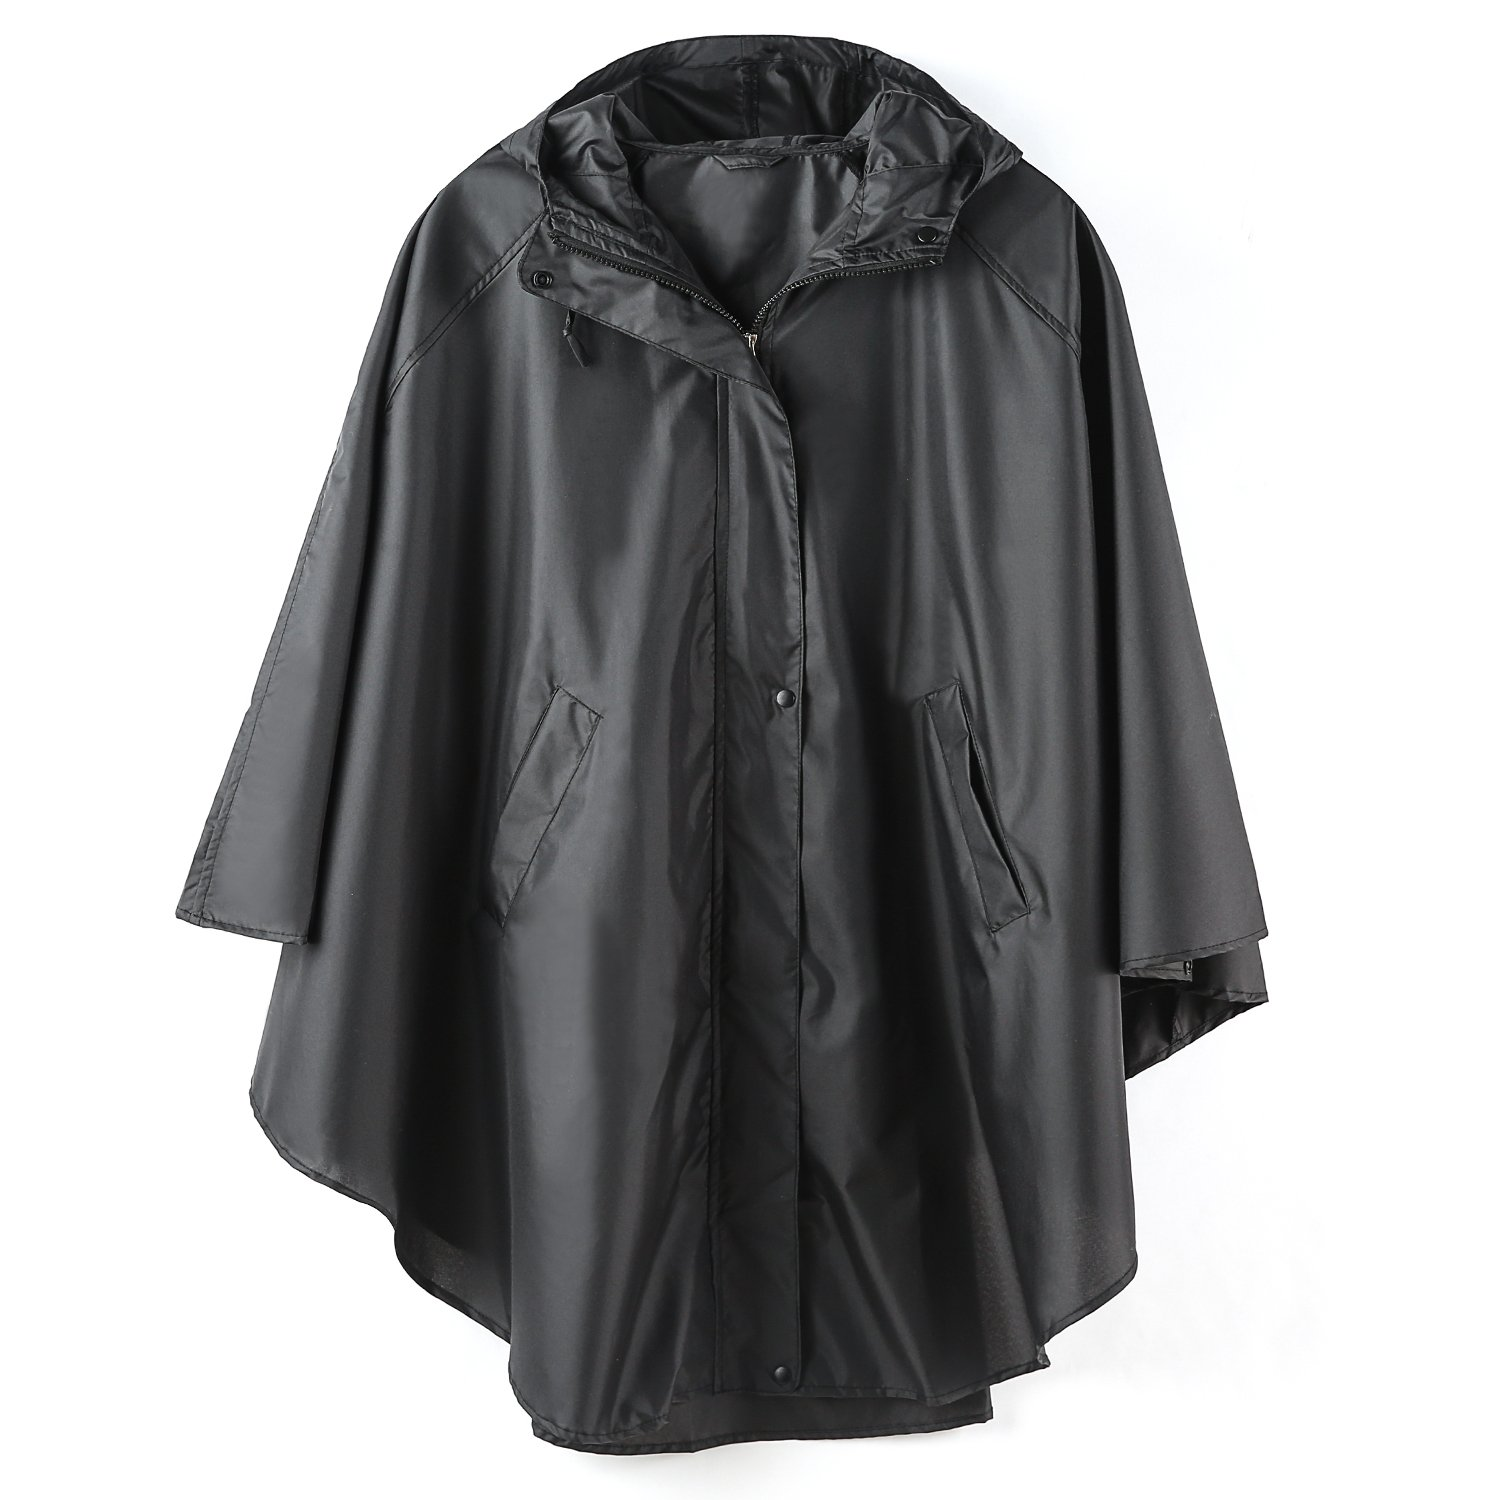 LINENLUX Rain Poncho Jacket Coat Hooded for Adults with Zipper (Black)